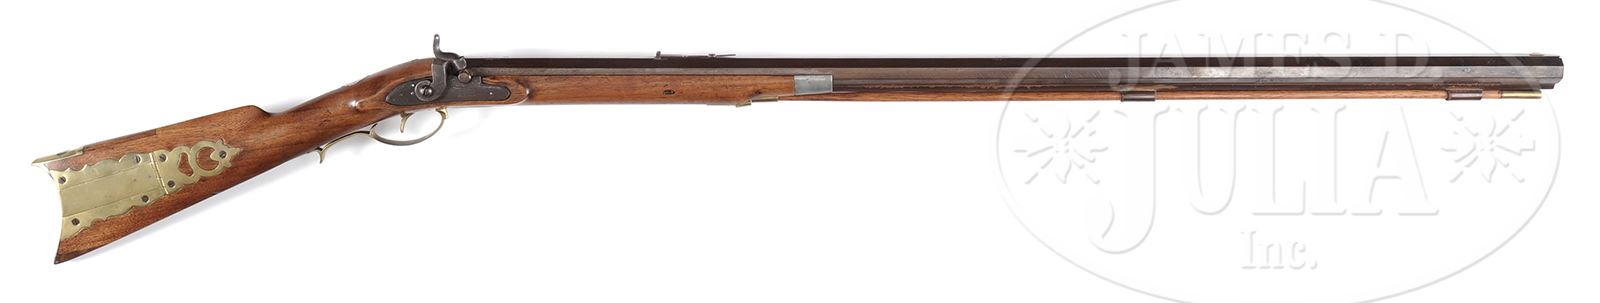 UNMARKED HALF STOCK PERCUSSION PLAINS RIFLE